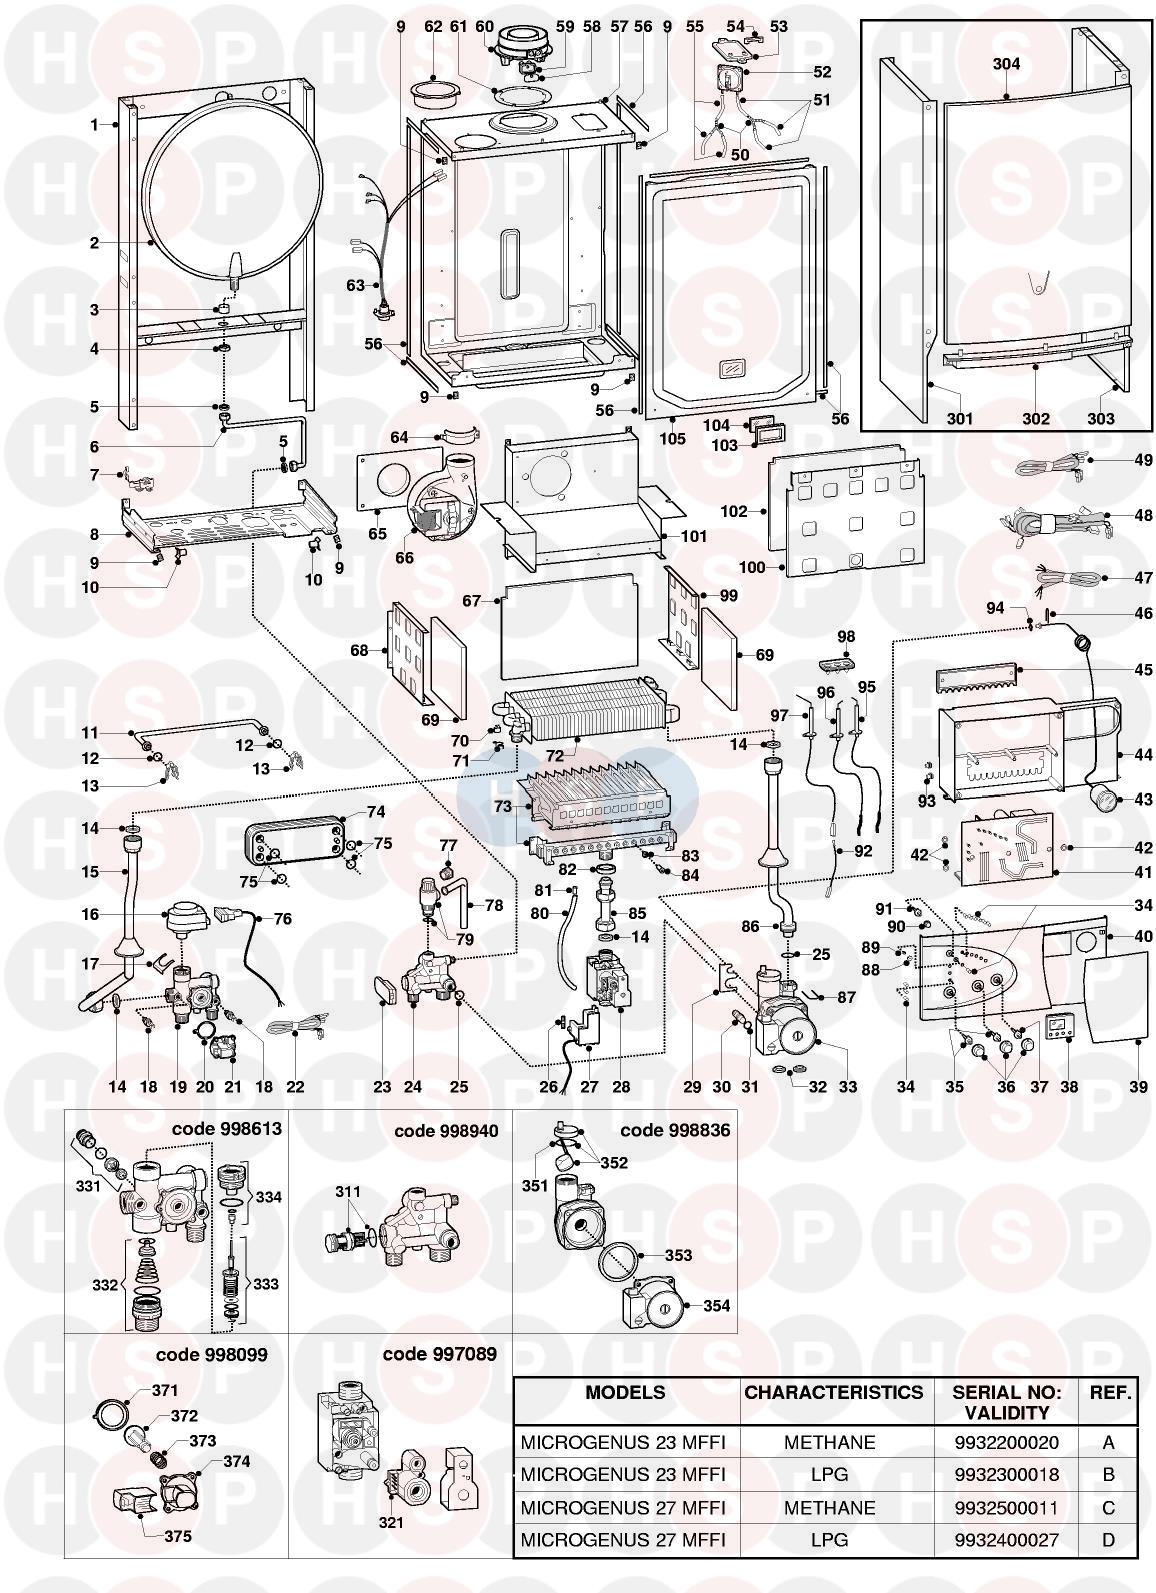 Ariston MICROGENUS 23 MFFI EDITION1 Appliance Diagram